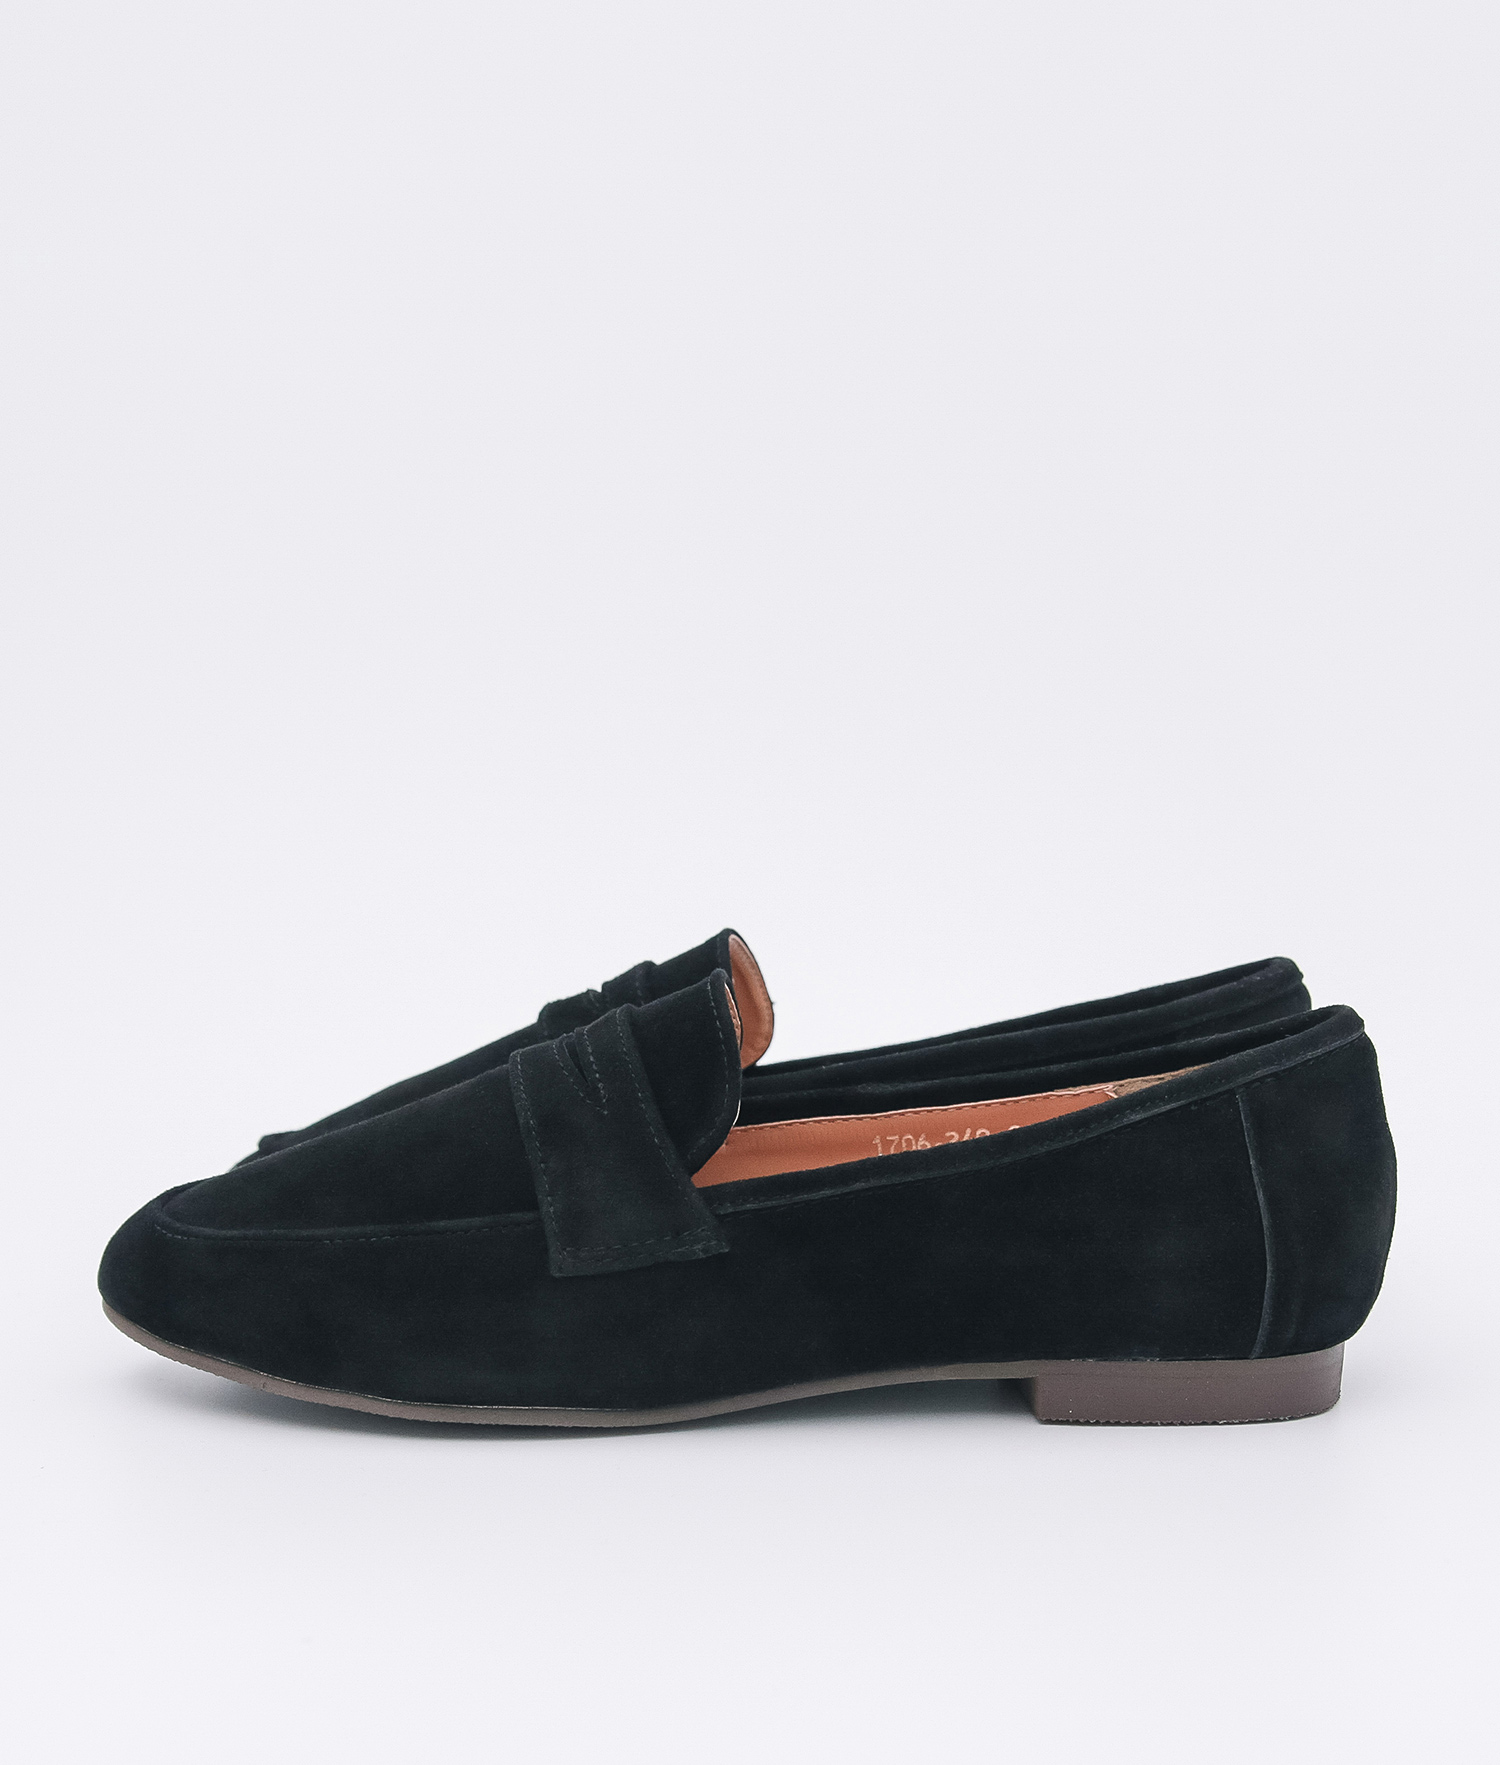 8abf2a1ae9e AnnaKastle Womens Cute Suede Penny Loafers Black